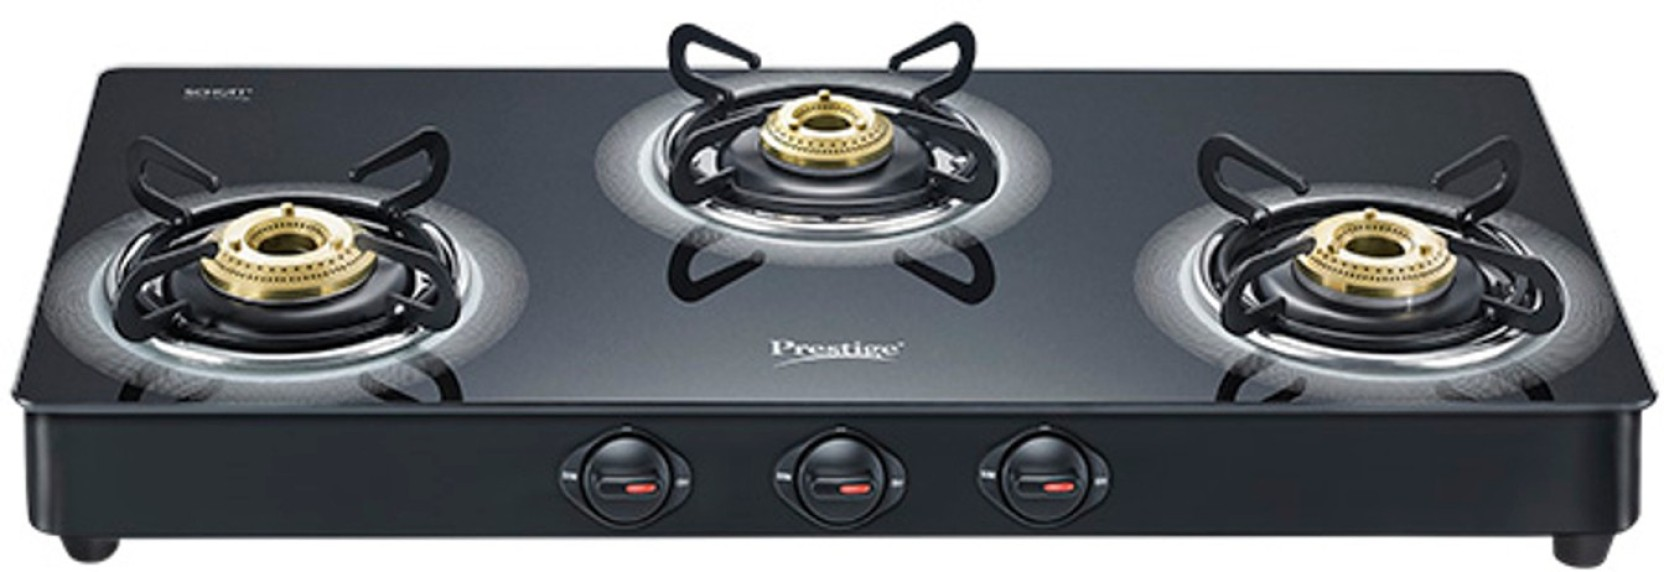 Prestige Royale Plus Glass Aluminium Manual Gas Stove